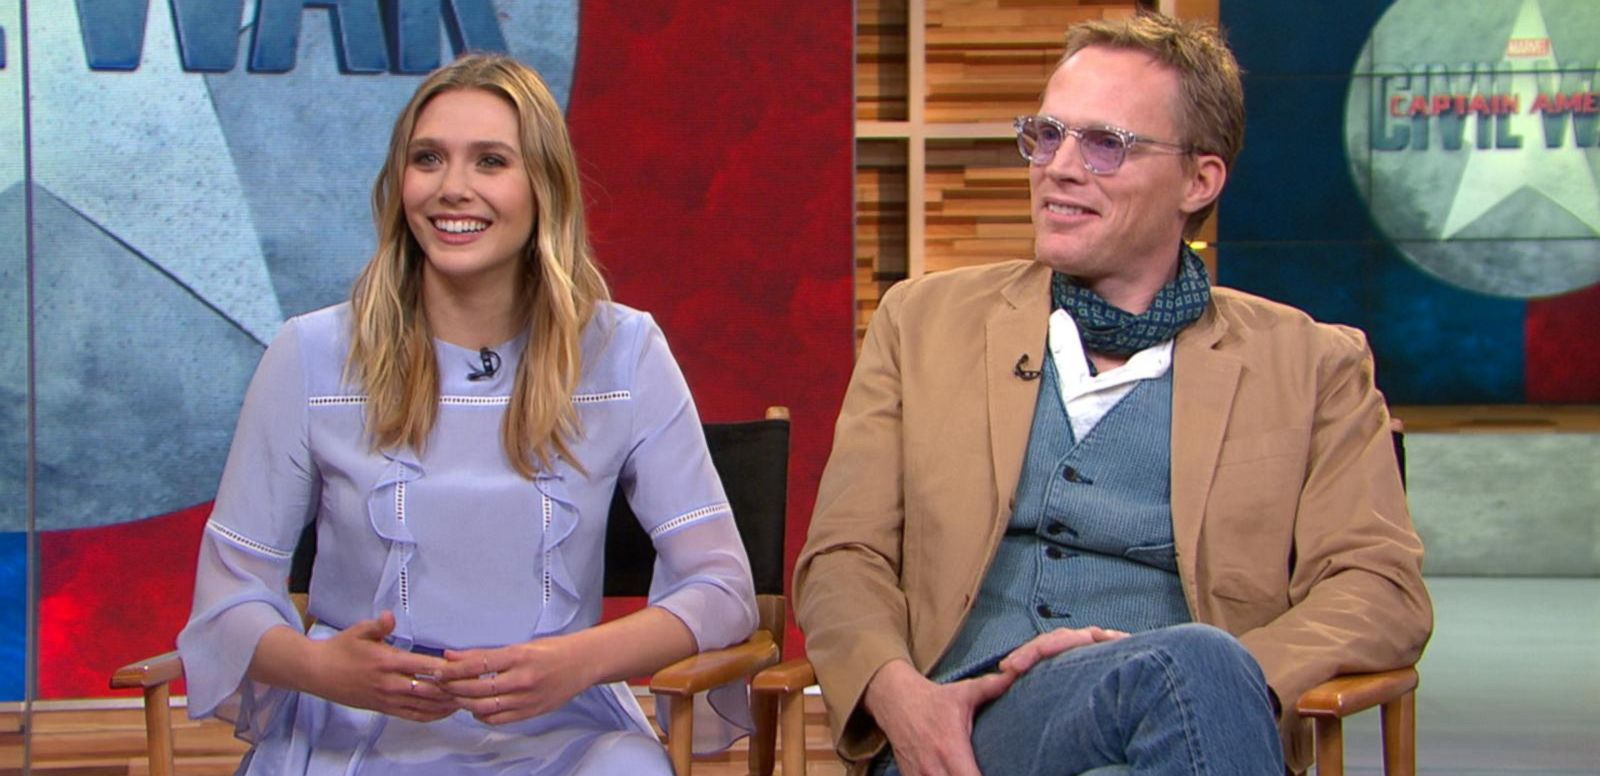 VIDEO: 'Captain America: Civil War': Elizabeth Olsen, Paul Bettany Visit 'GMA'